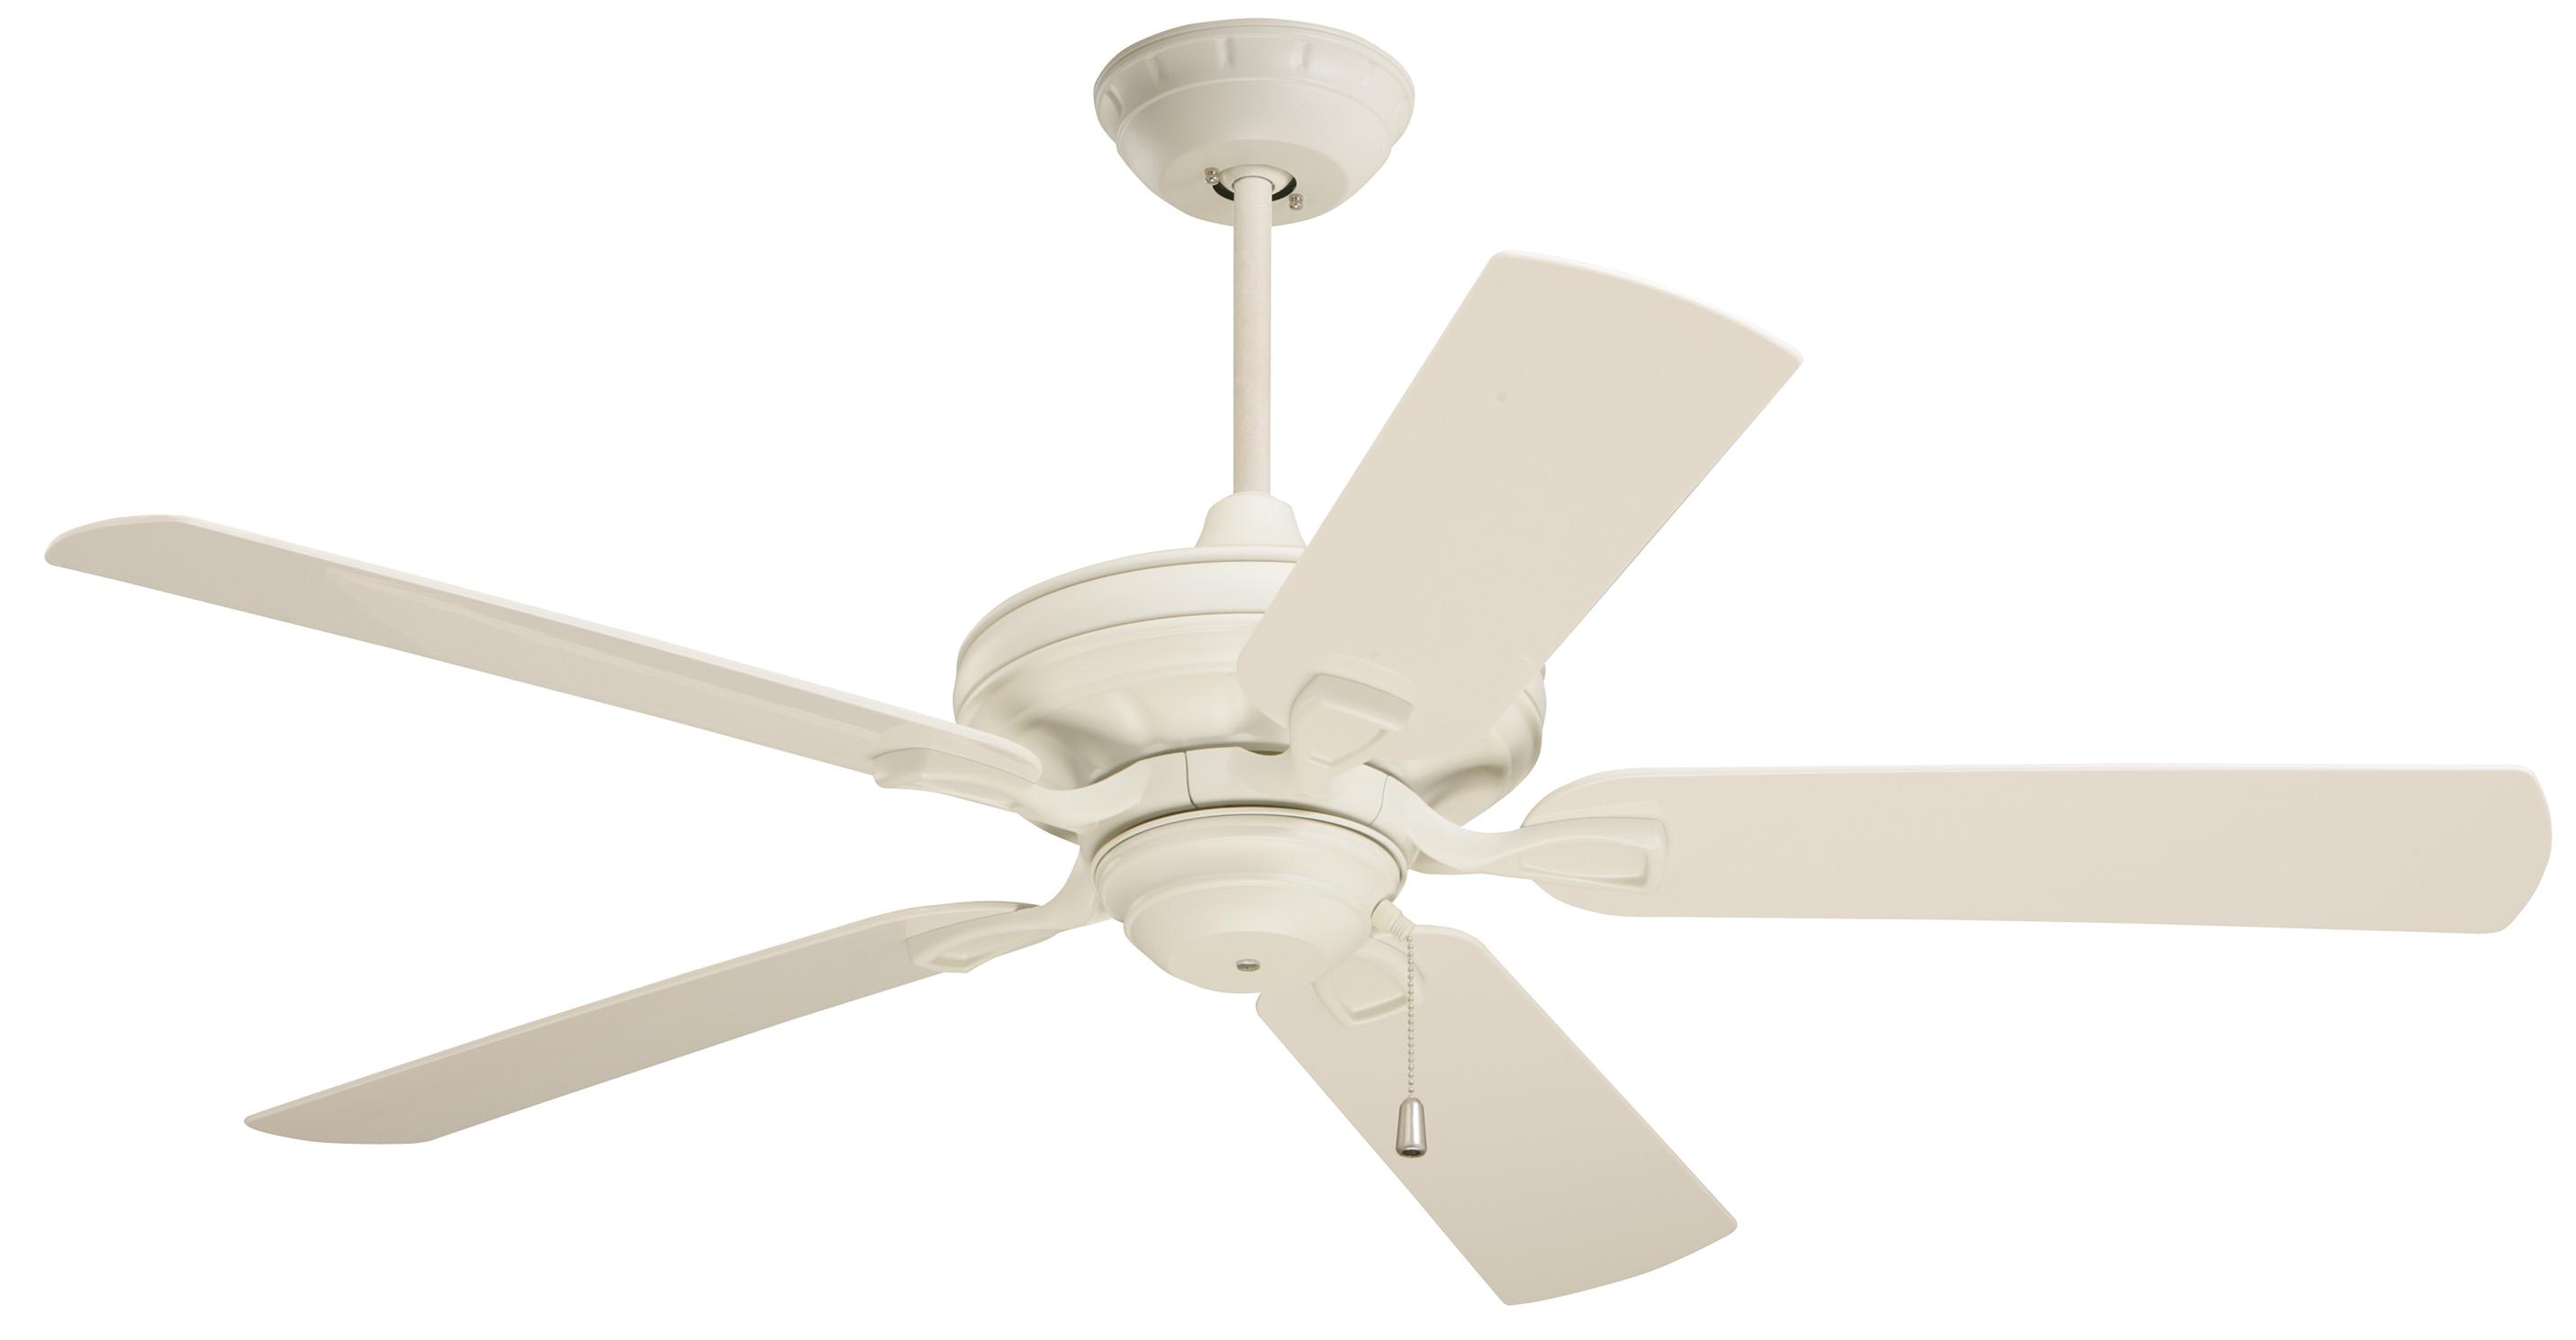 How to install Ceiling fan model ac 552